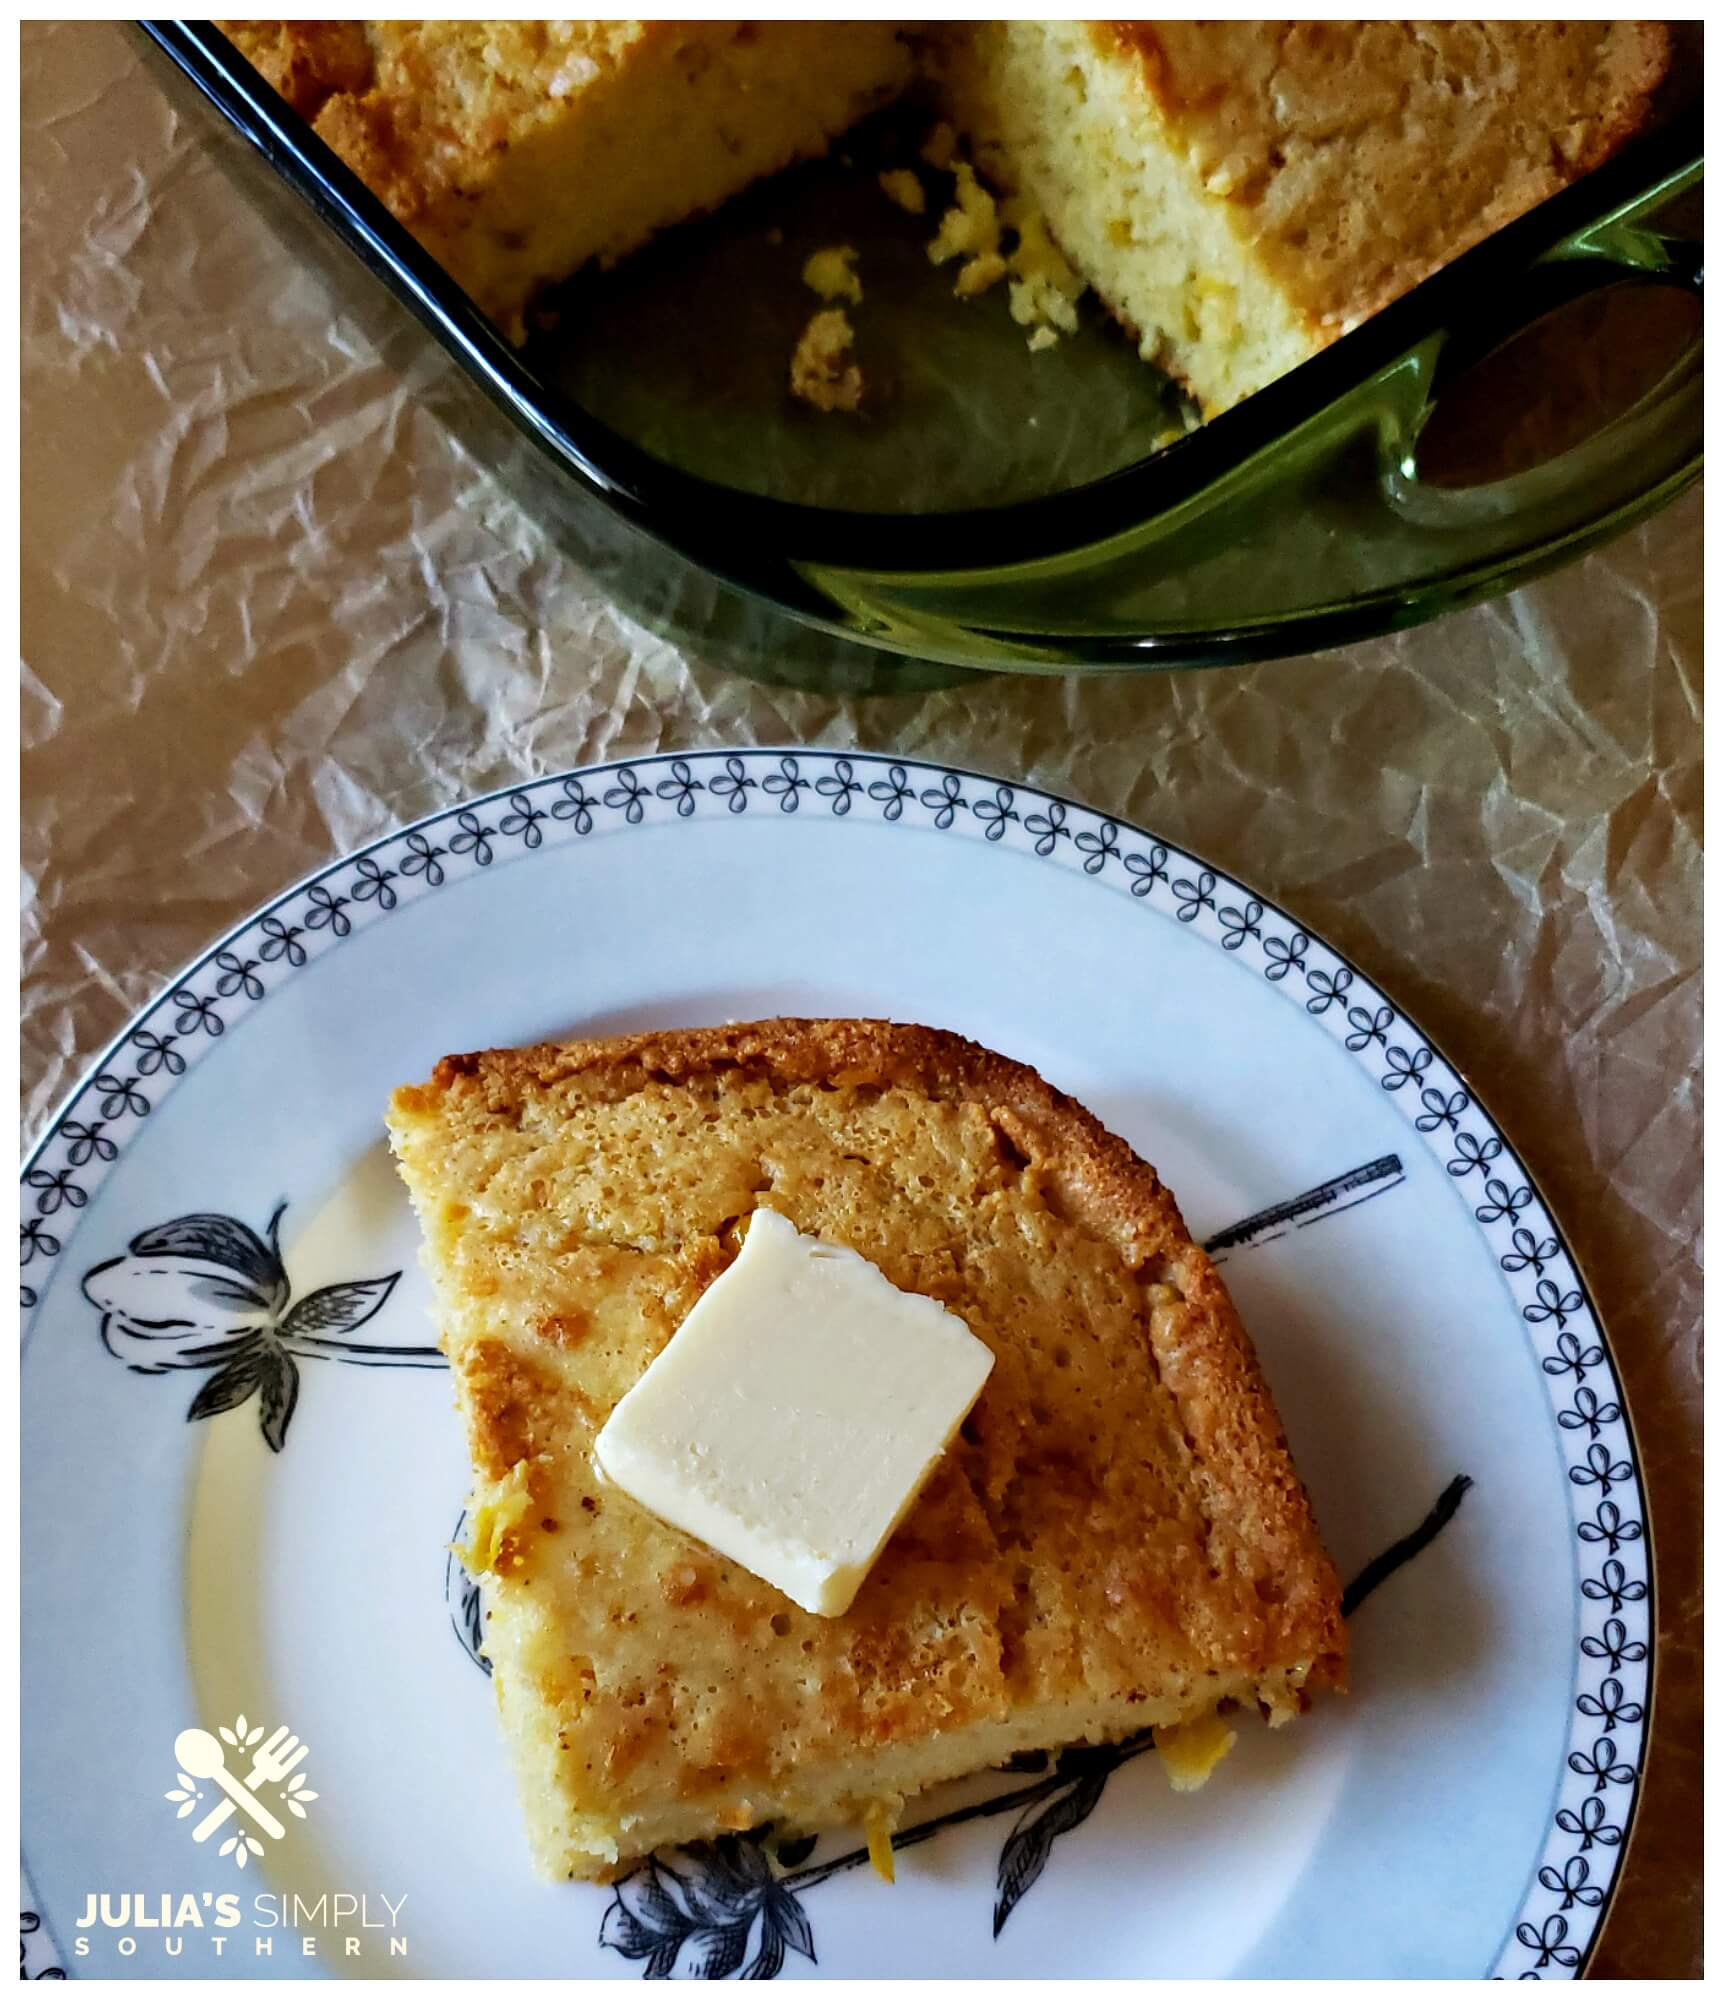 A wedge or rich and moist Southern cornbread on a plate topped with a pat of butter